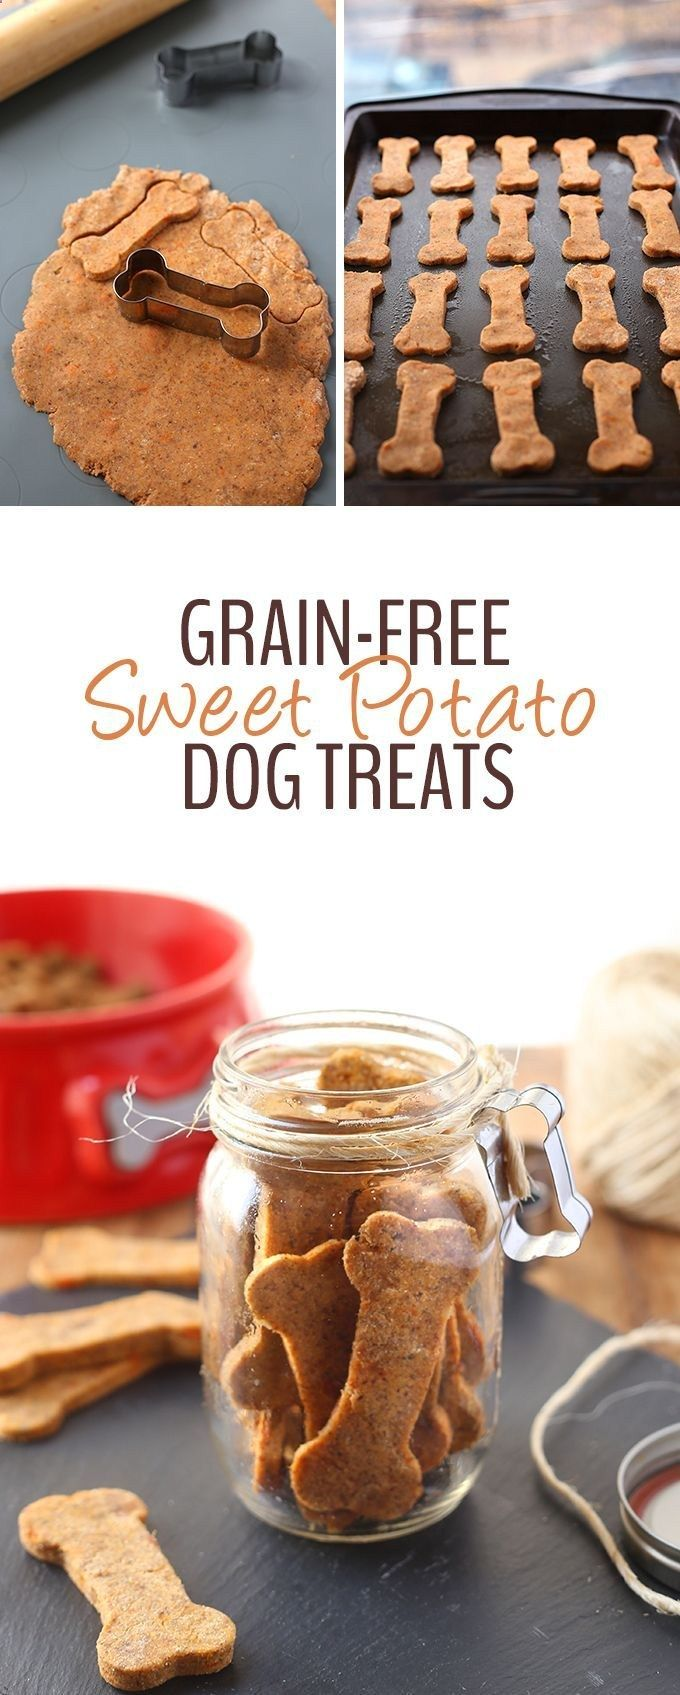 Treat your pup with these GrainFree Sweet Potato Dog